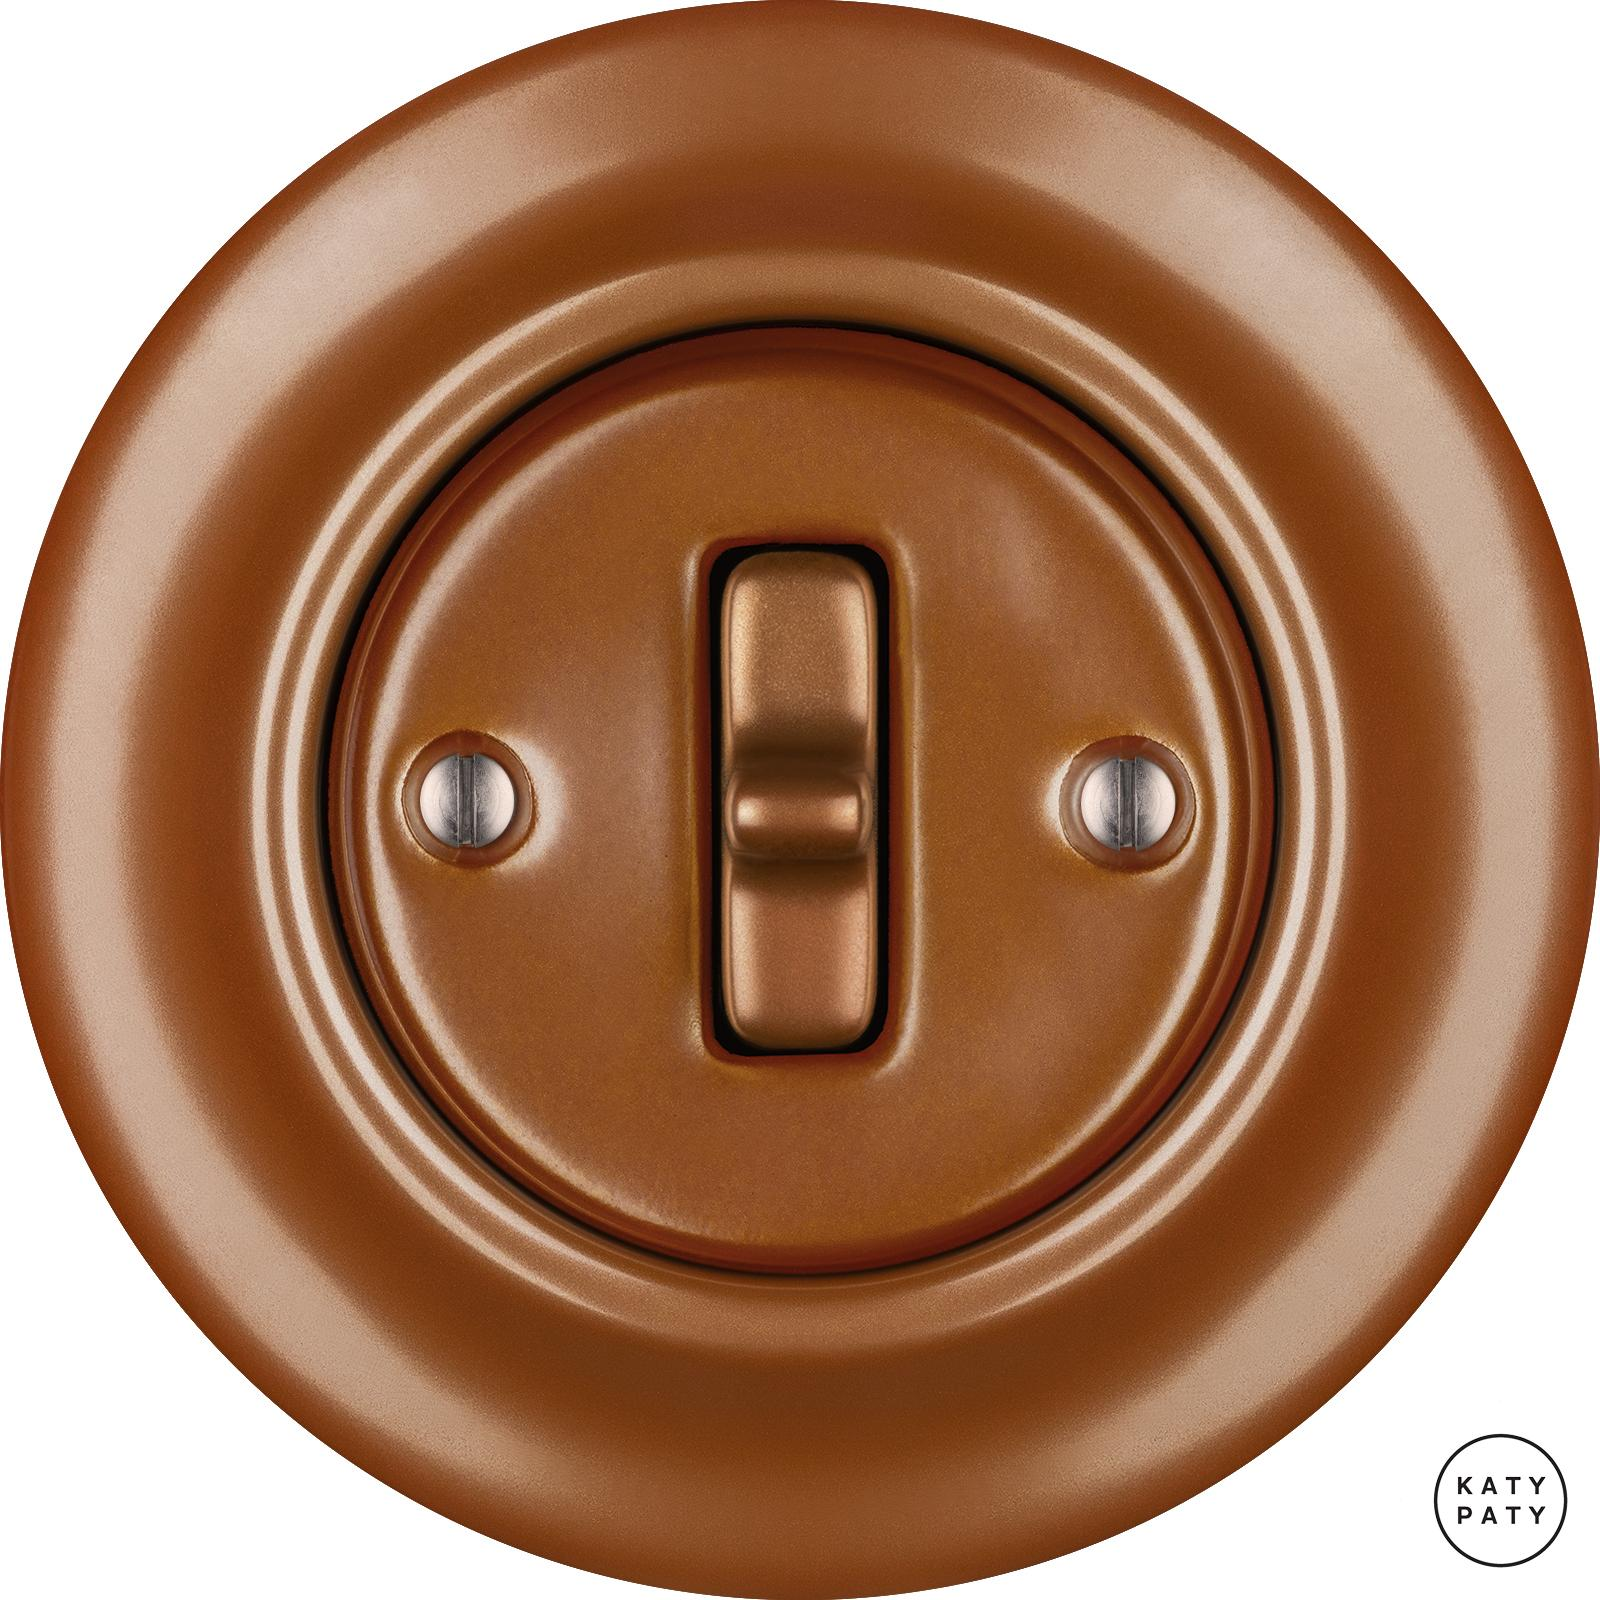 Porcelain Toggle switches - 1 gang ()  - CUPRUM | Katy Paty